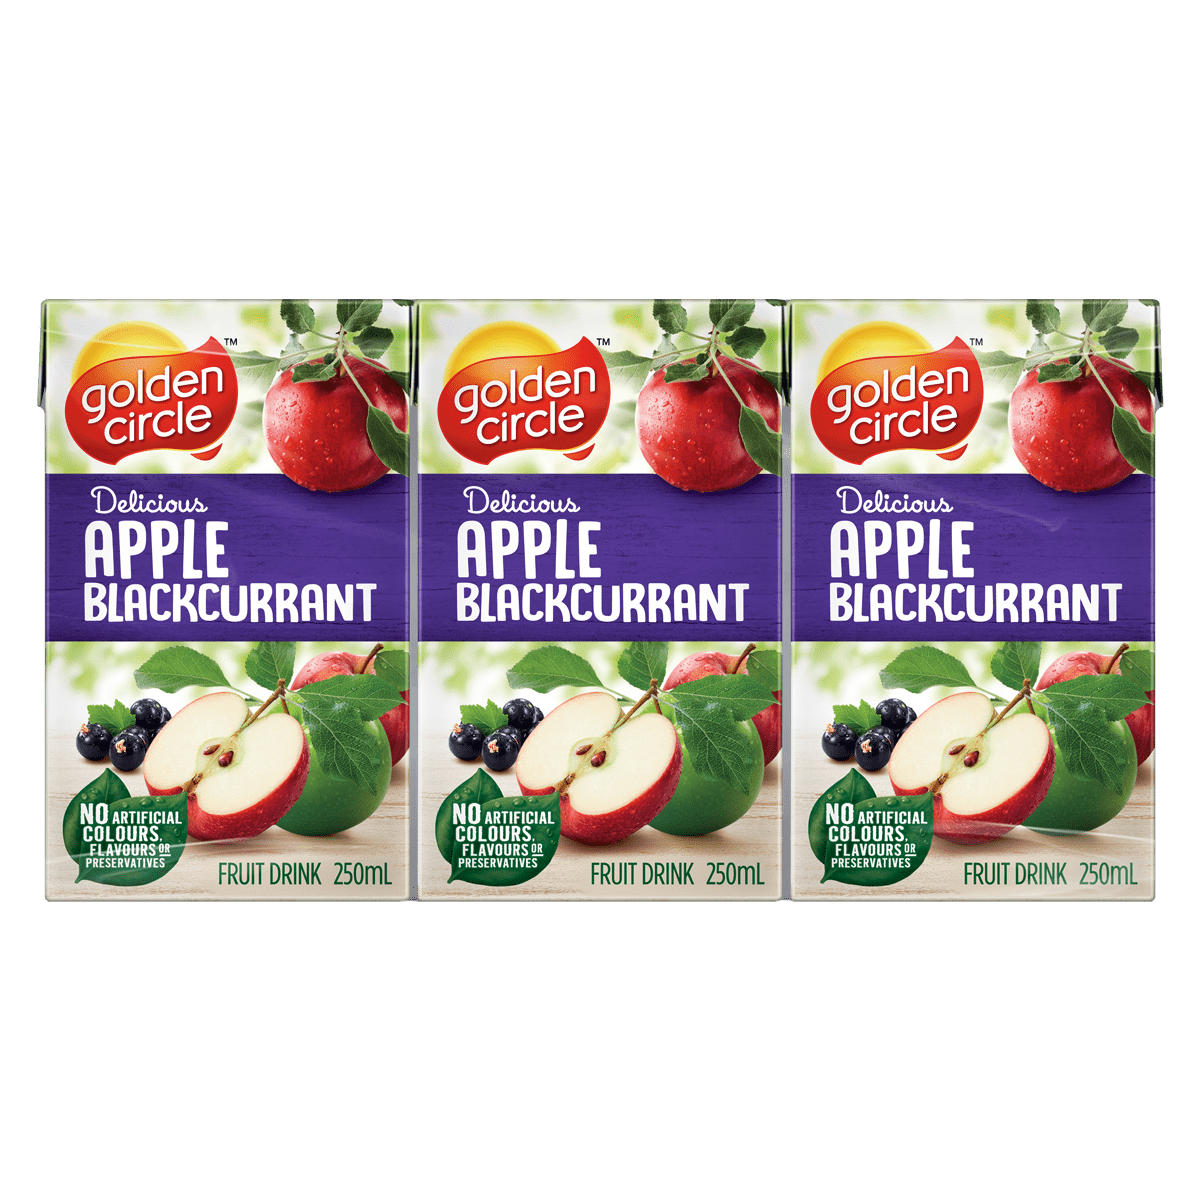 Apple Blackcurrant 6pk image